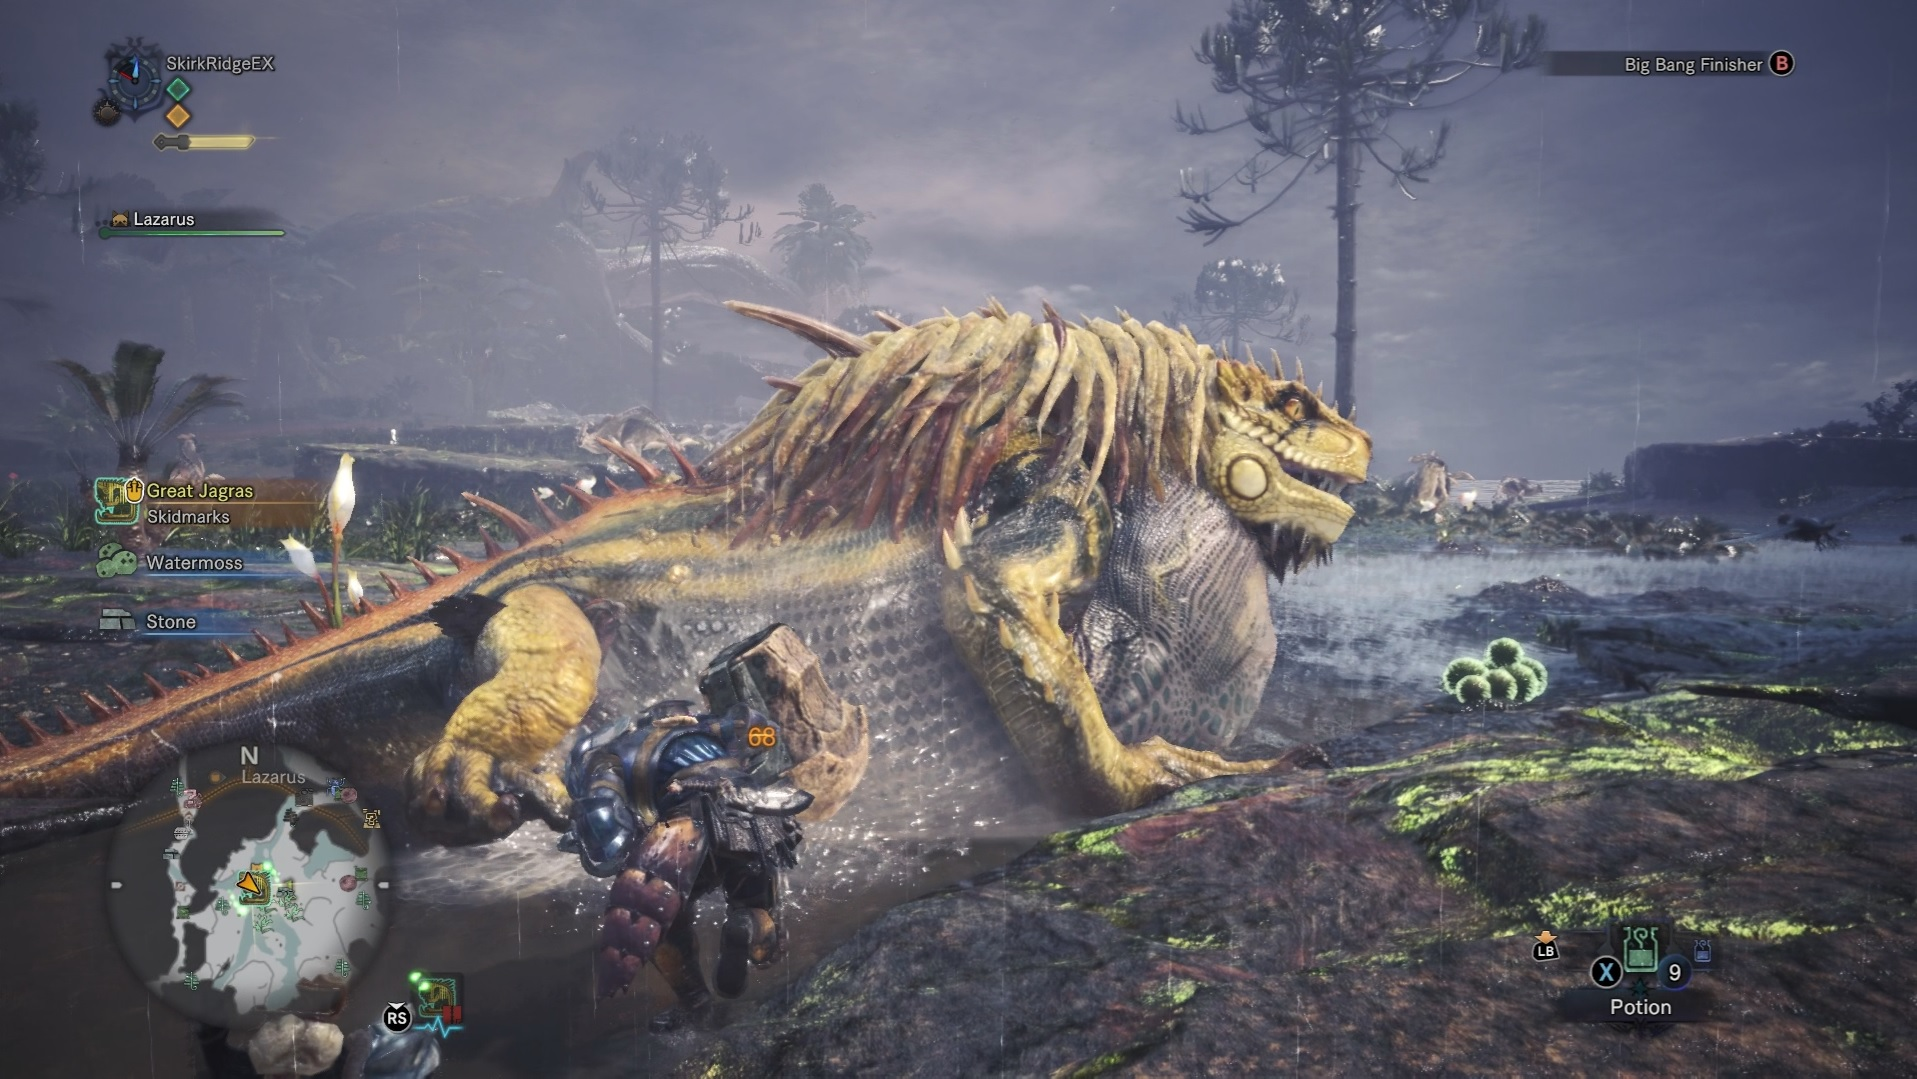 Player is attempting to break the Great Jagras' stomach